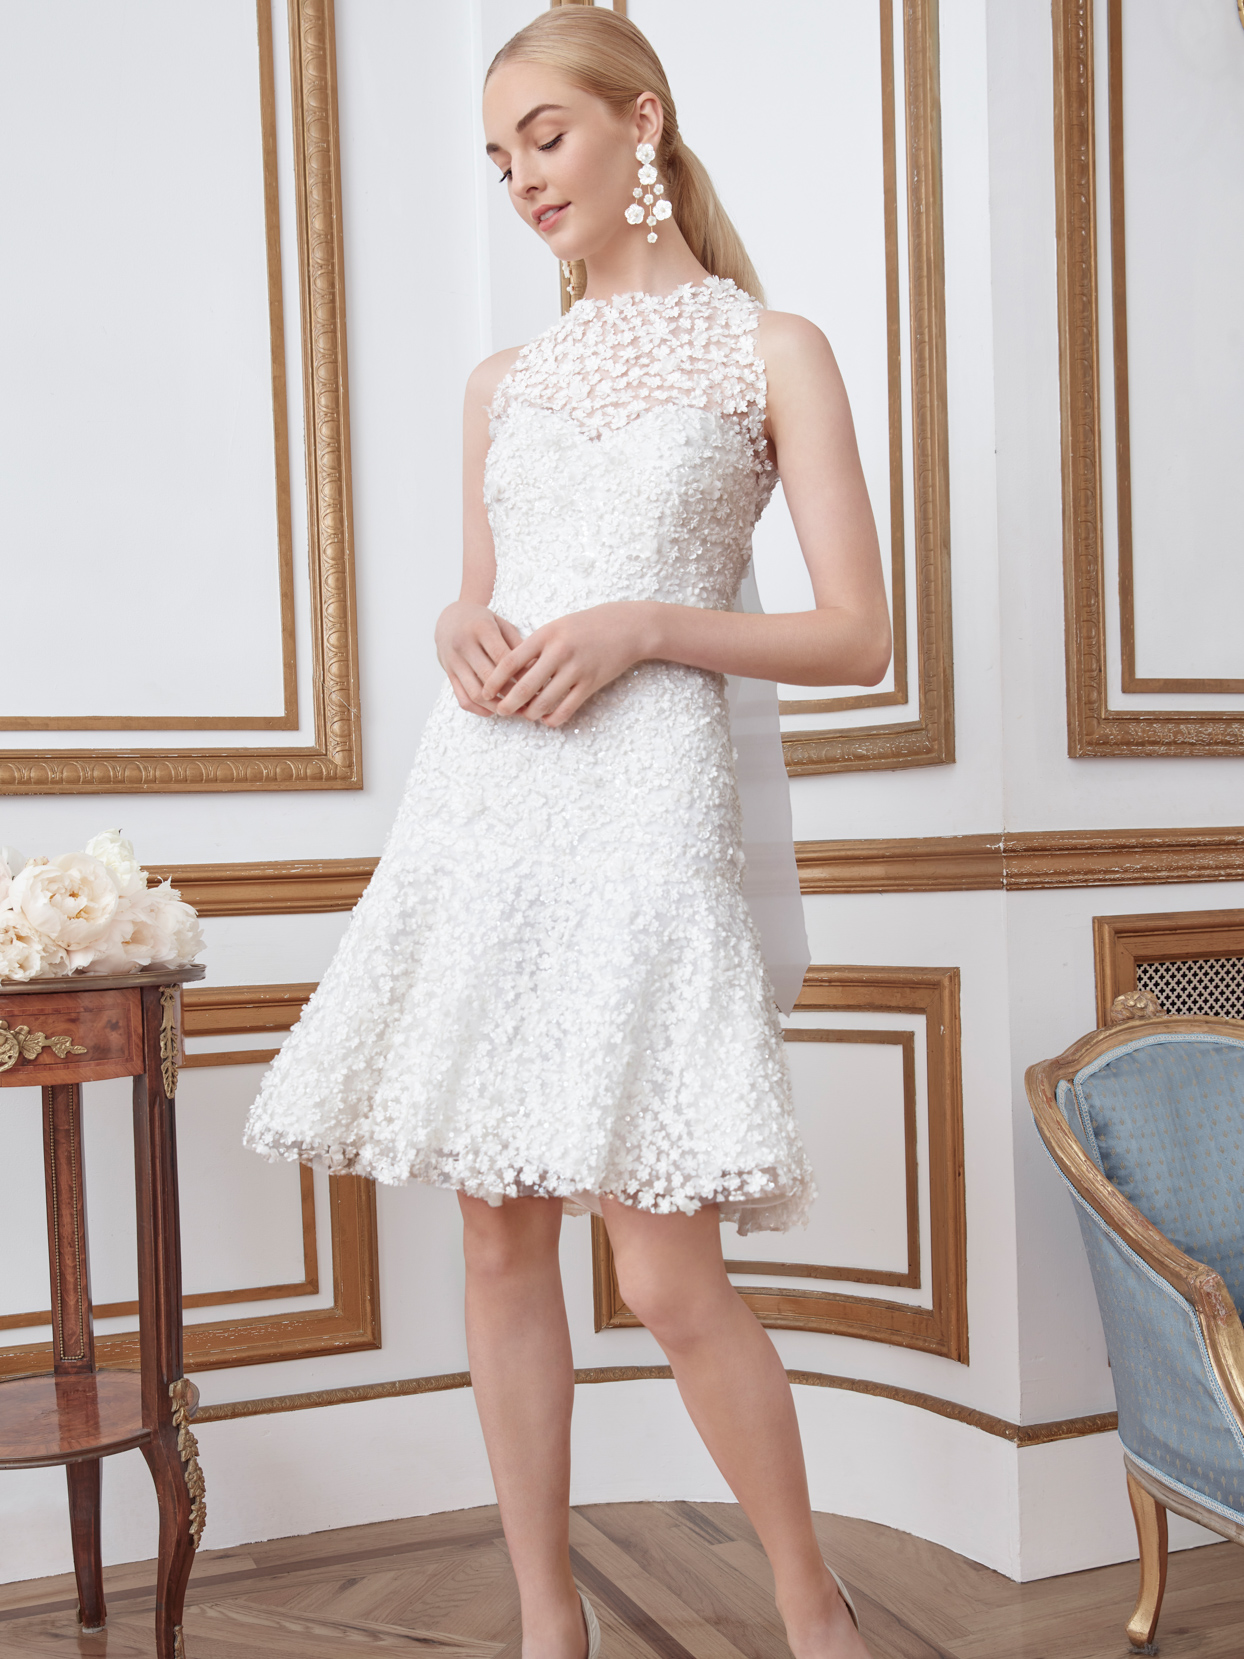 sareh nouri short floral overlay wedding dress fall 2021